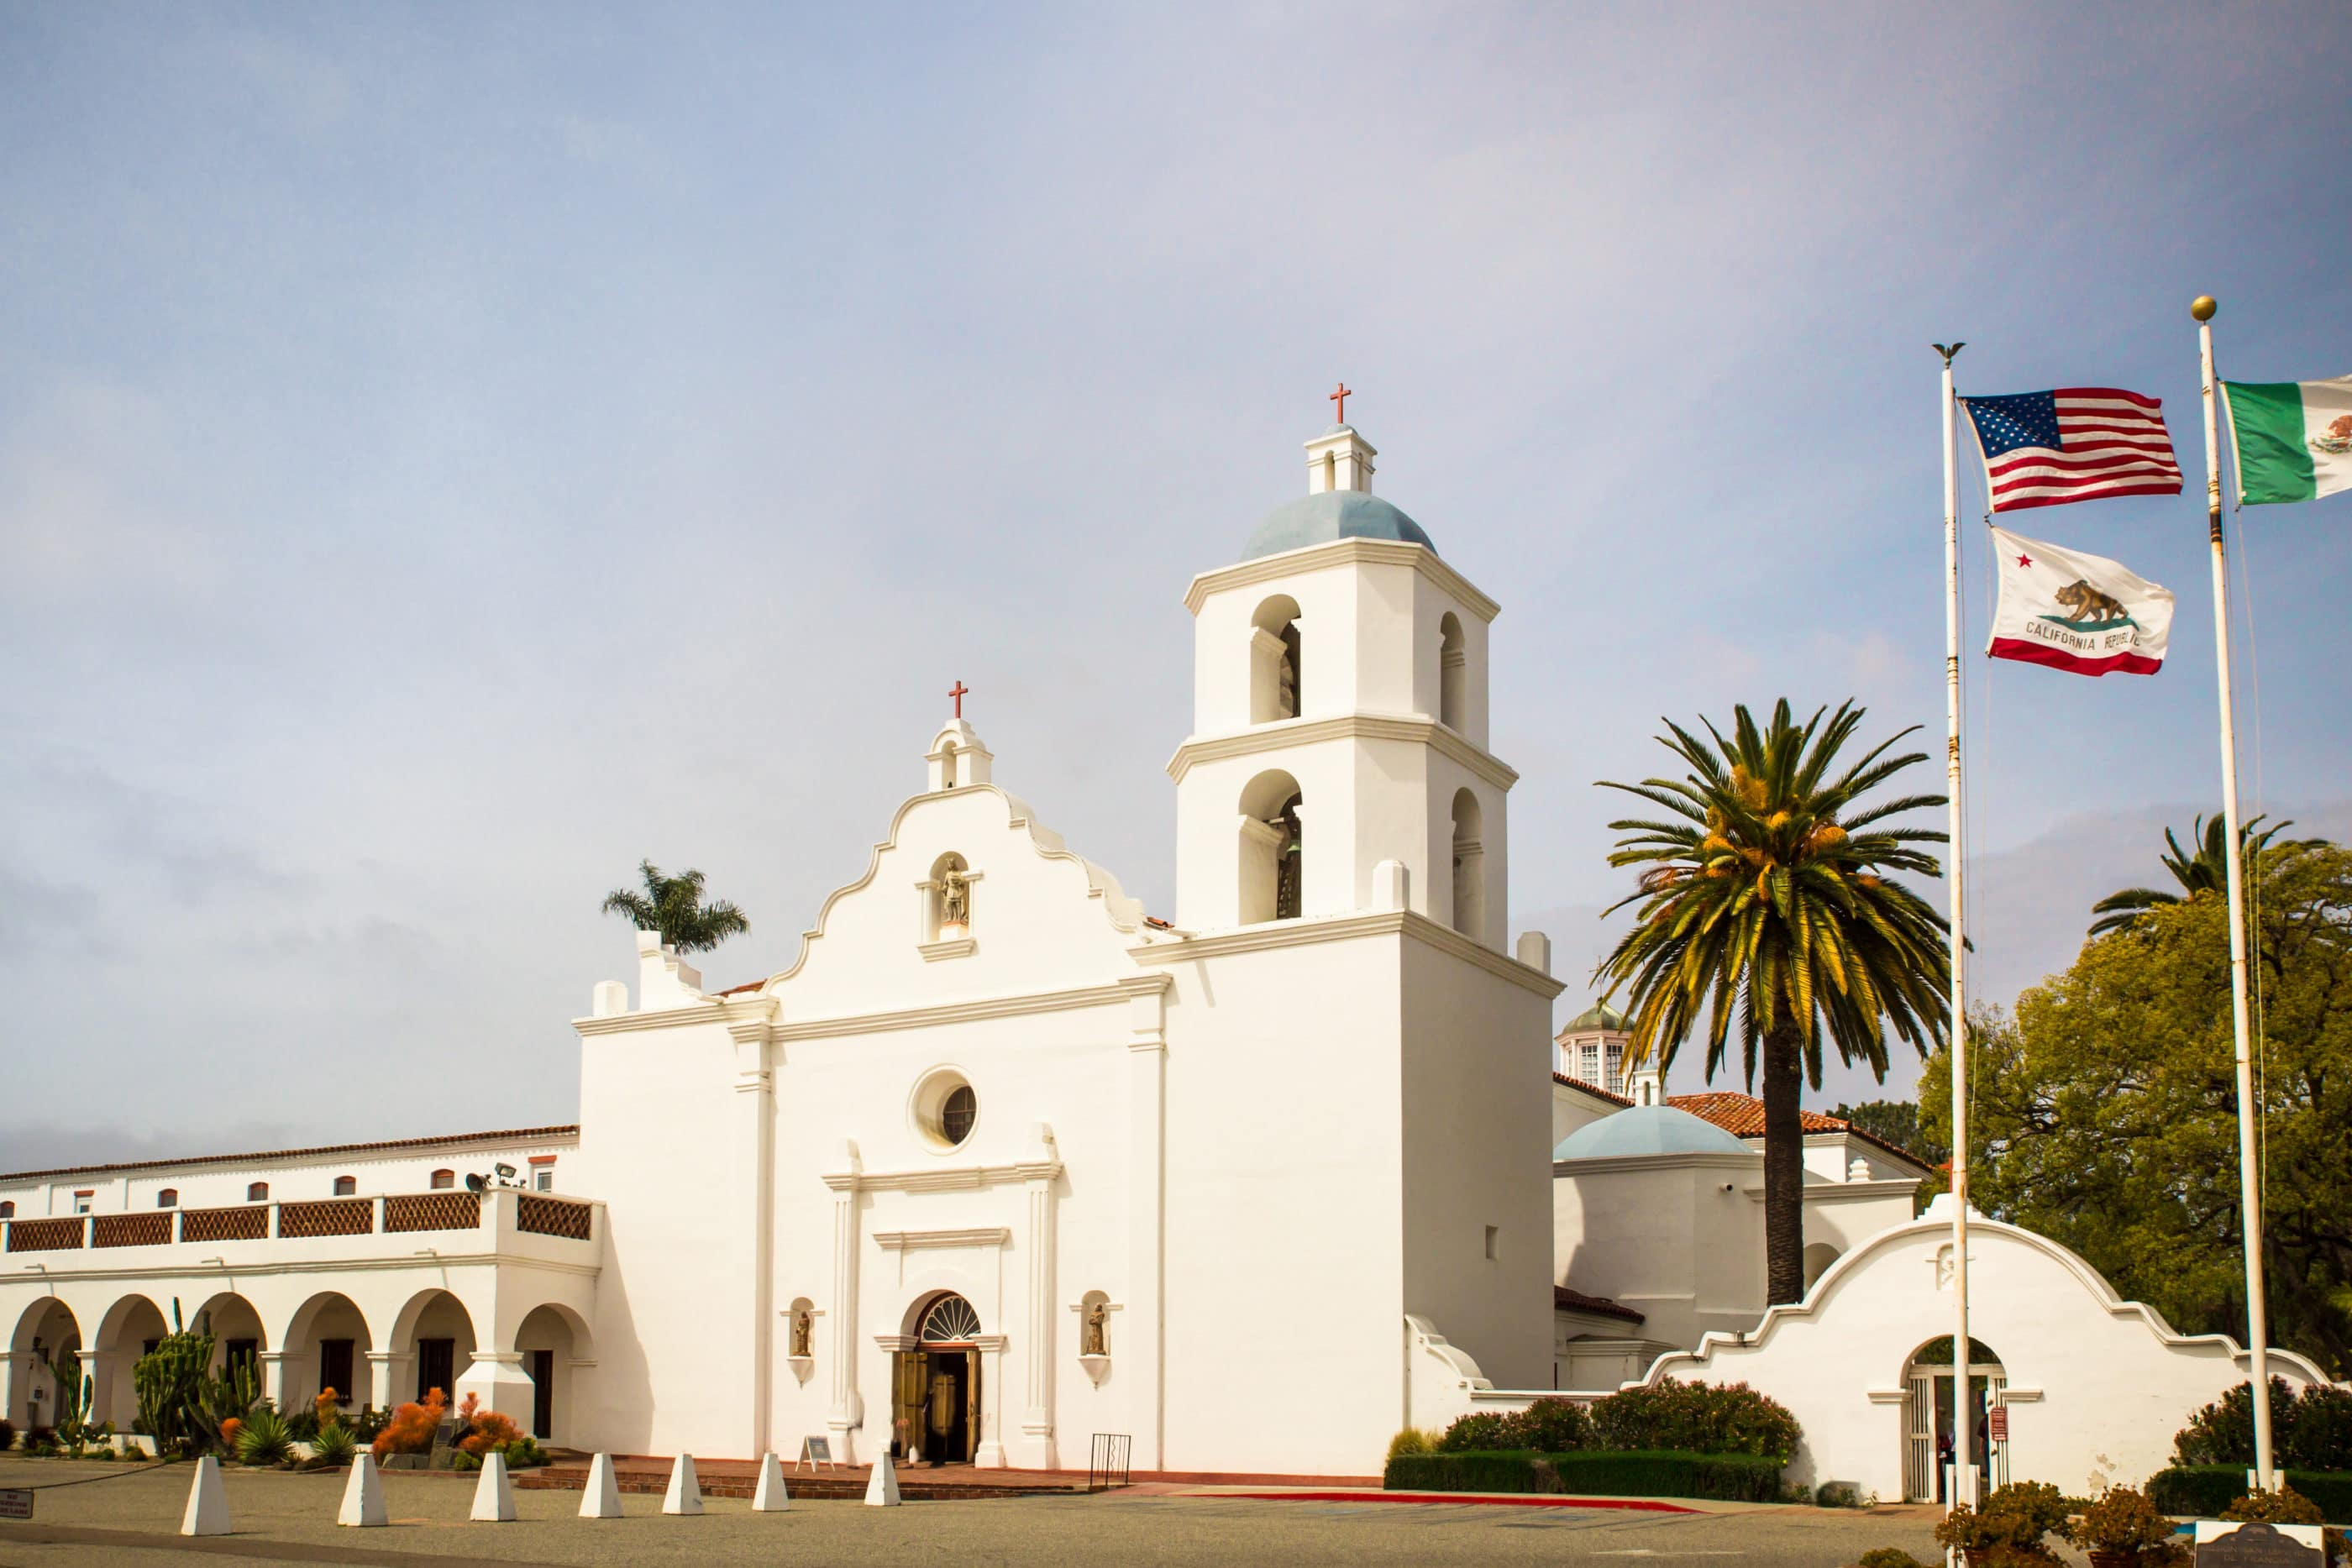 The facade of Mission San Luis Rey in Oceanside, California